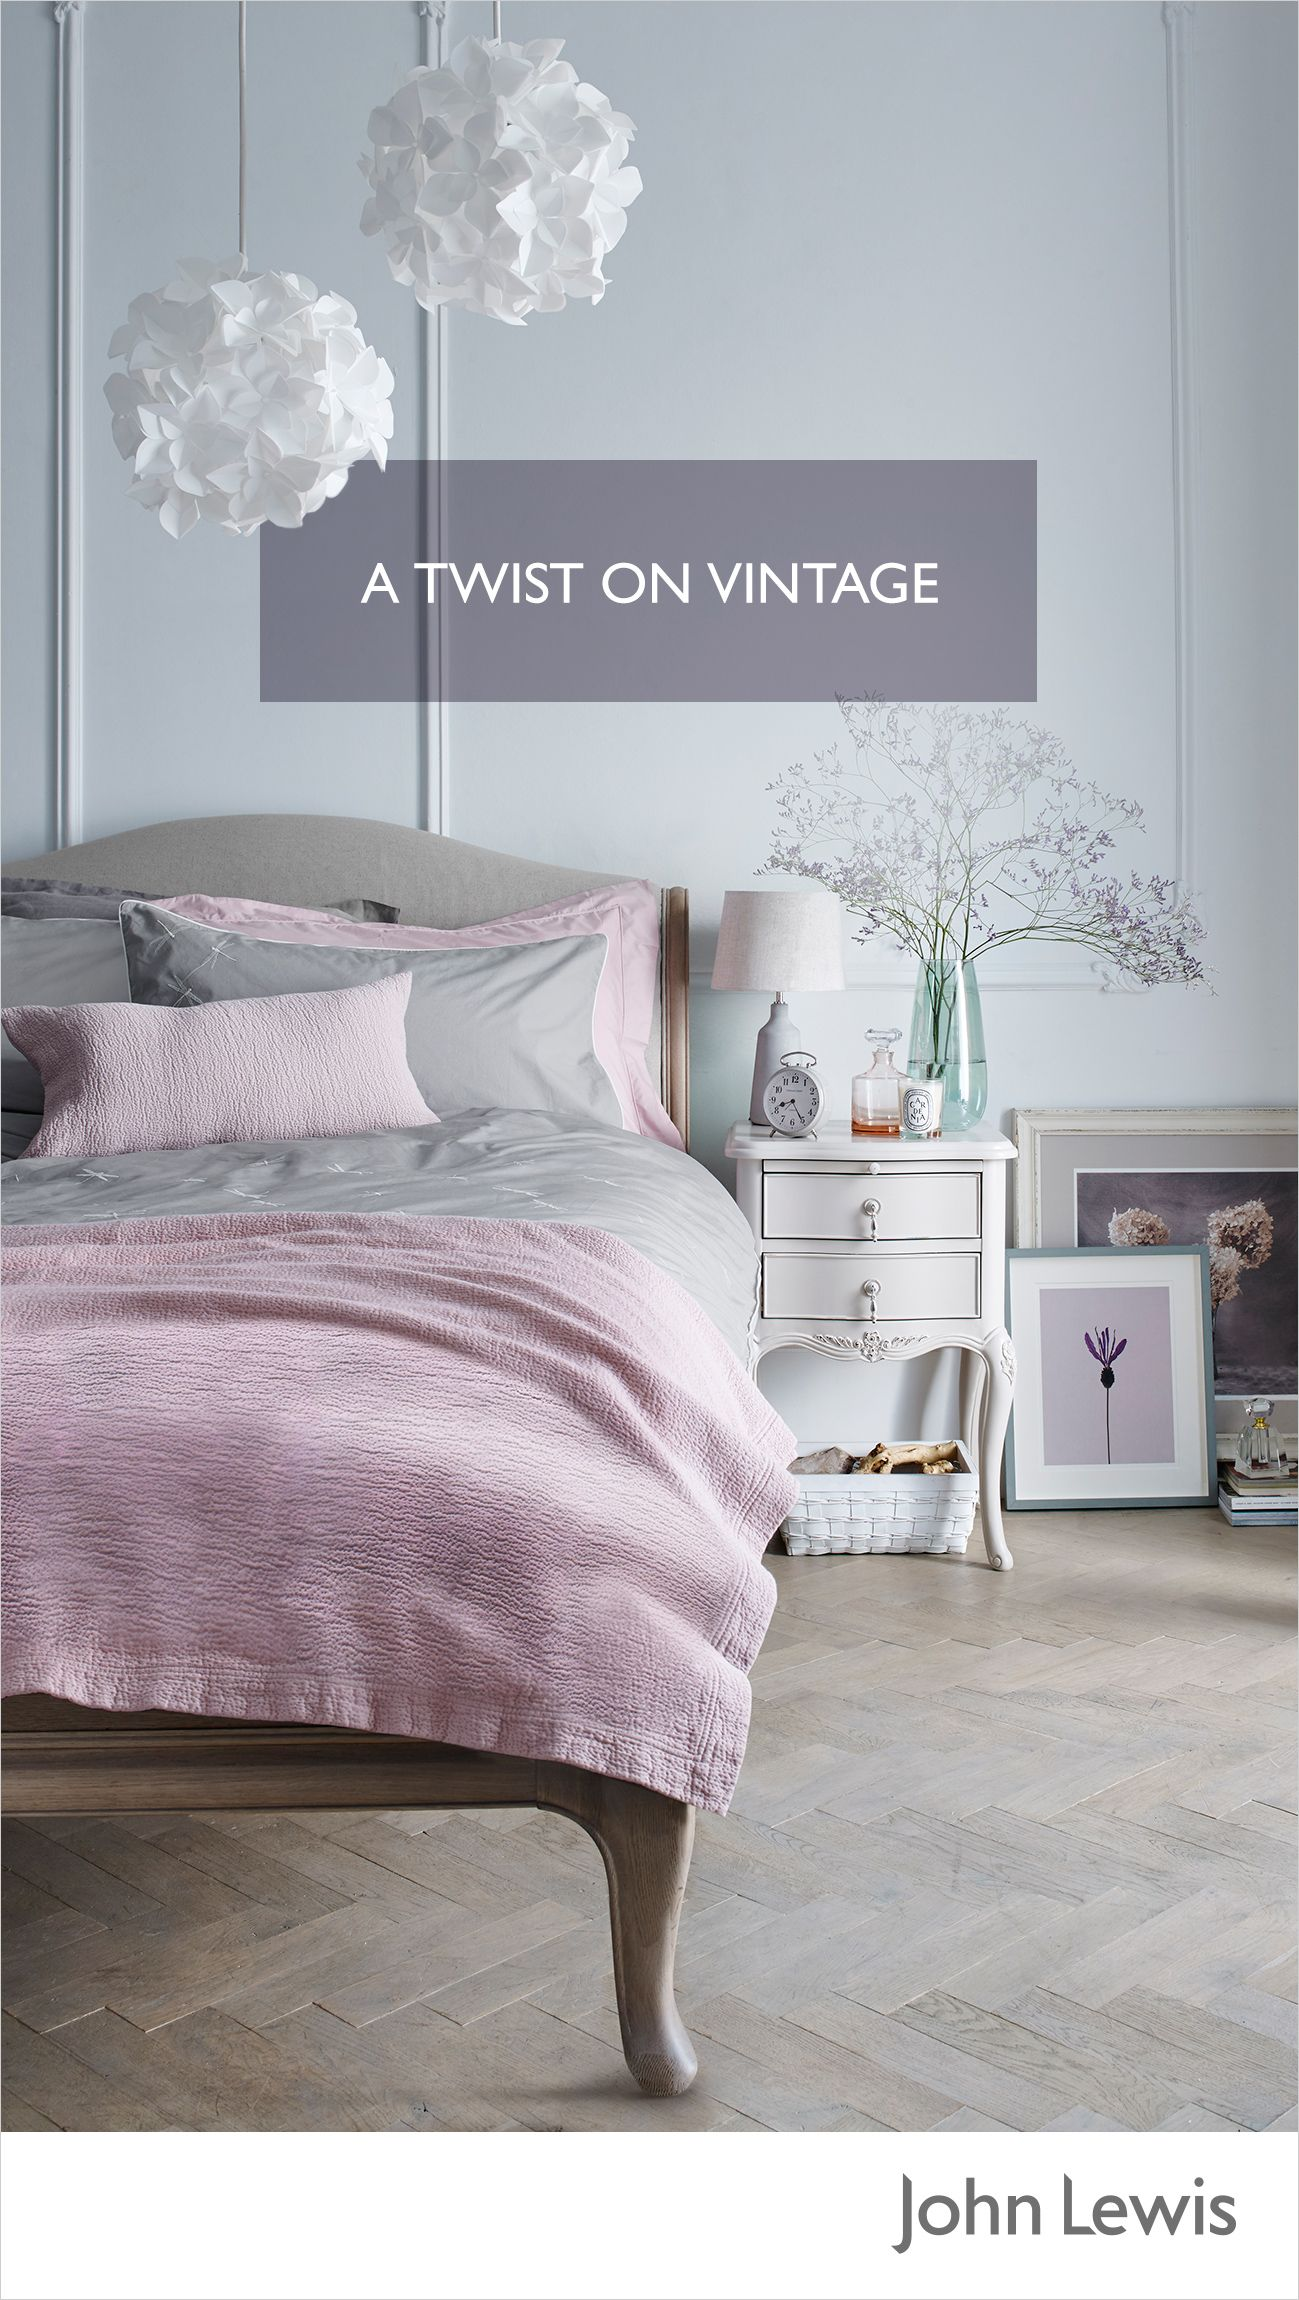 Give your vintagestyle sleep sanctuary a modern twist with